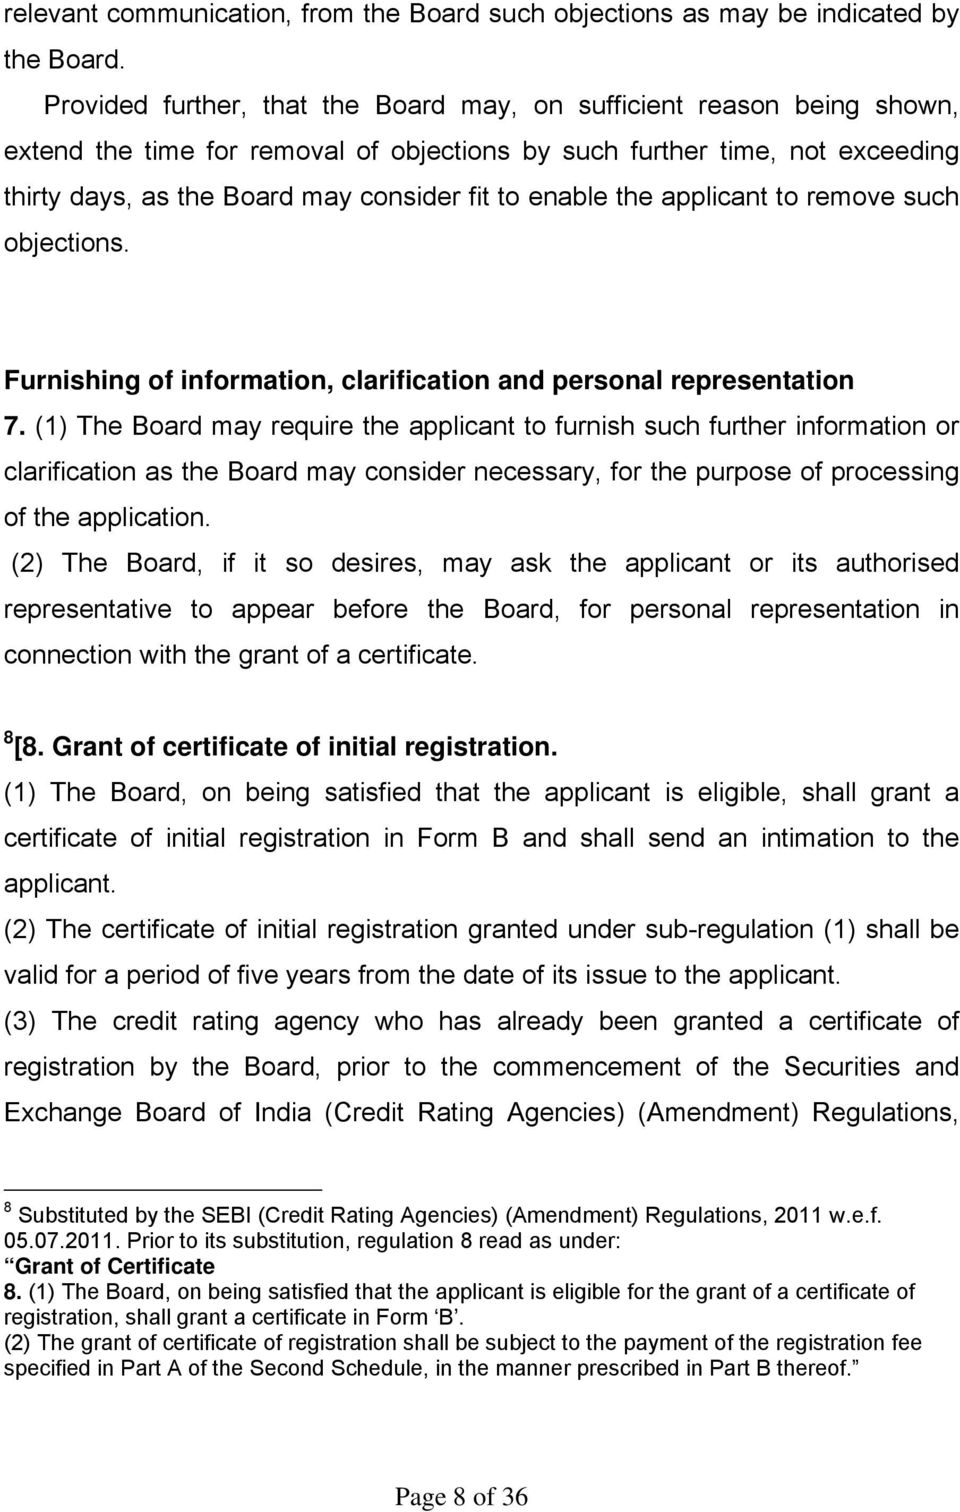 enable the applicant to remove such objections. Furnishing of information, clarification and personal representation 7.